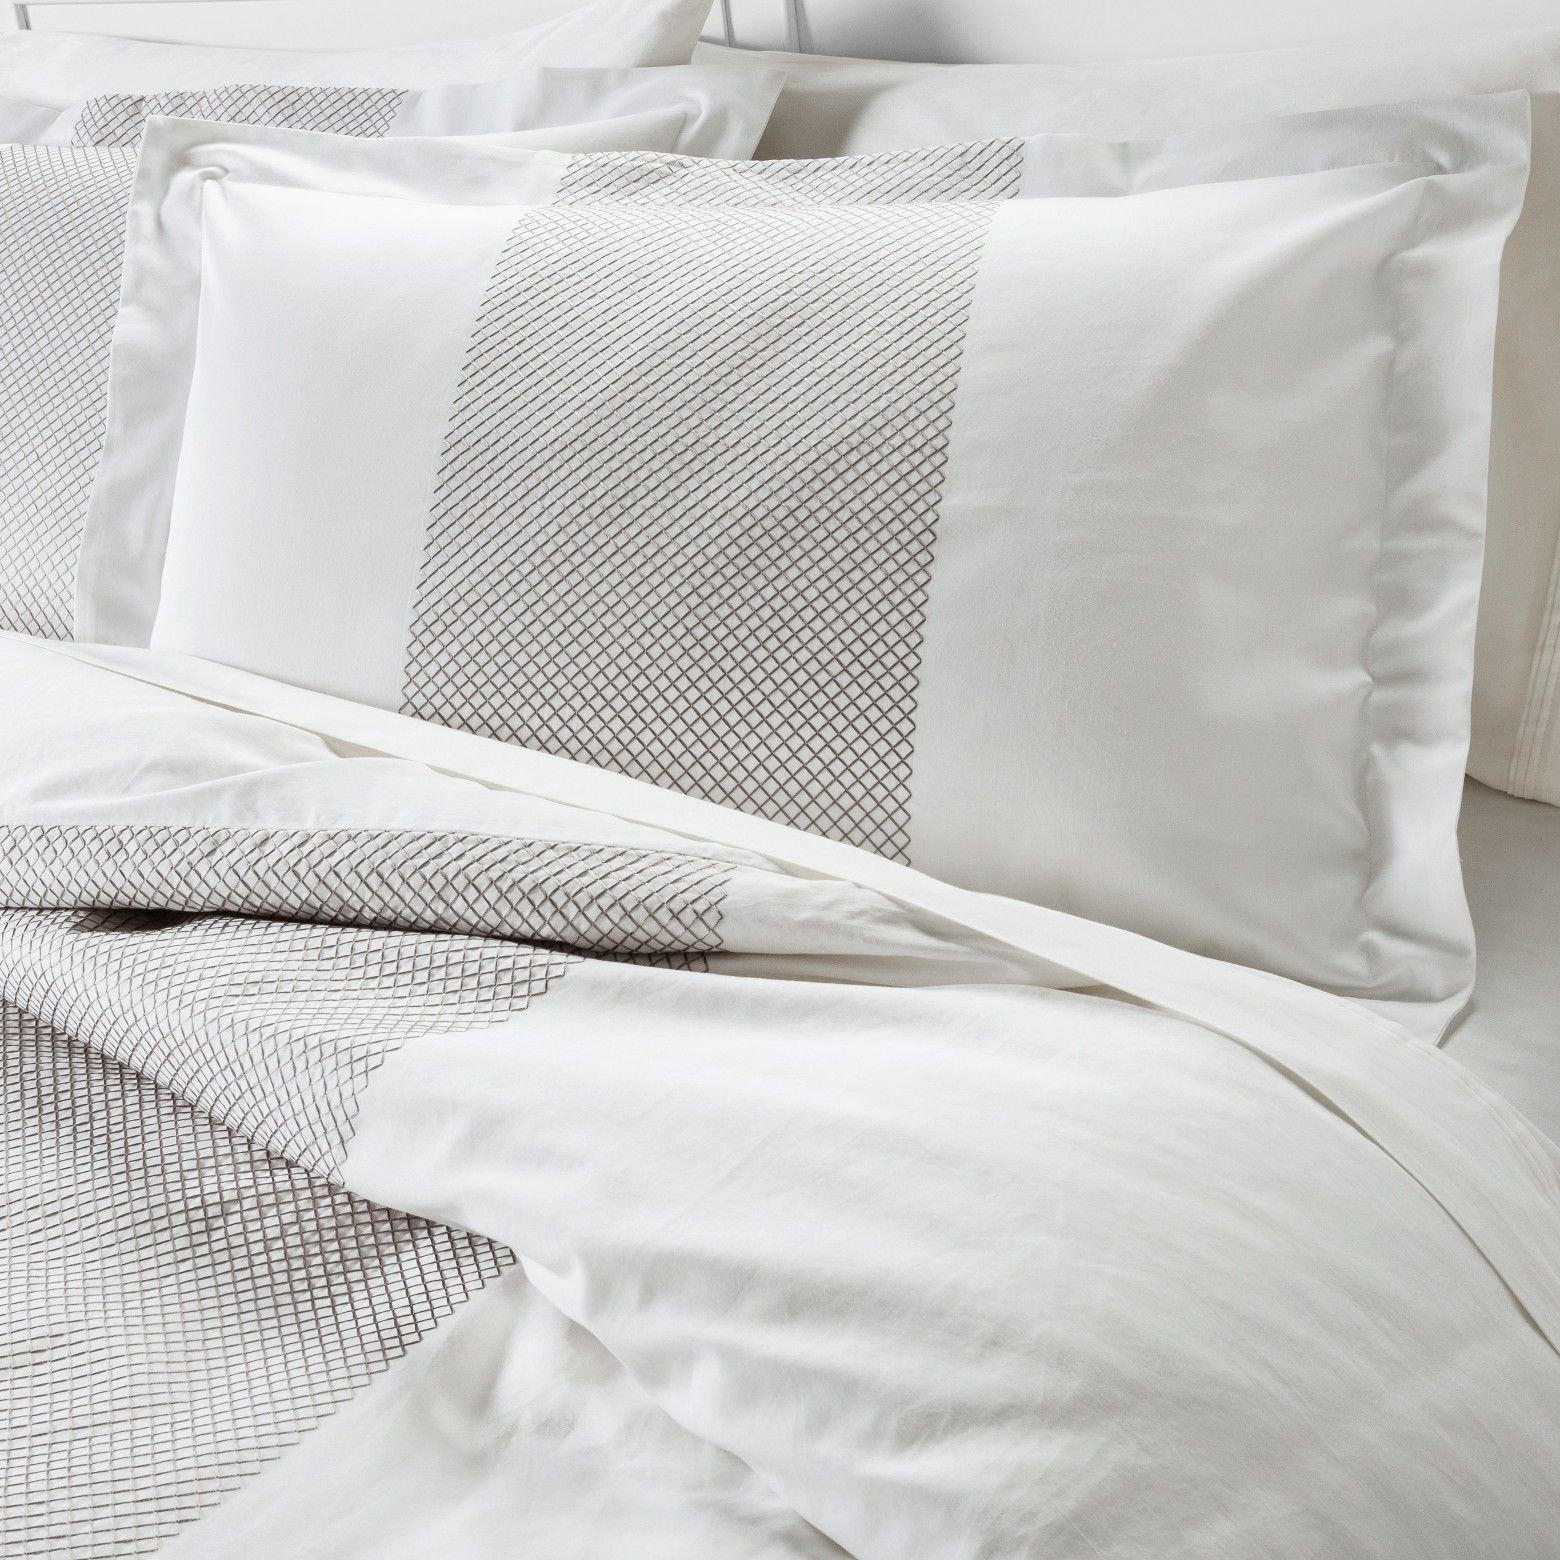 Give Your Bedding An Elegant Update With The Fieldcrest Luxury Embroidered Band Duvet Sham Set